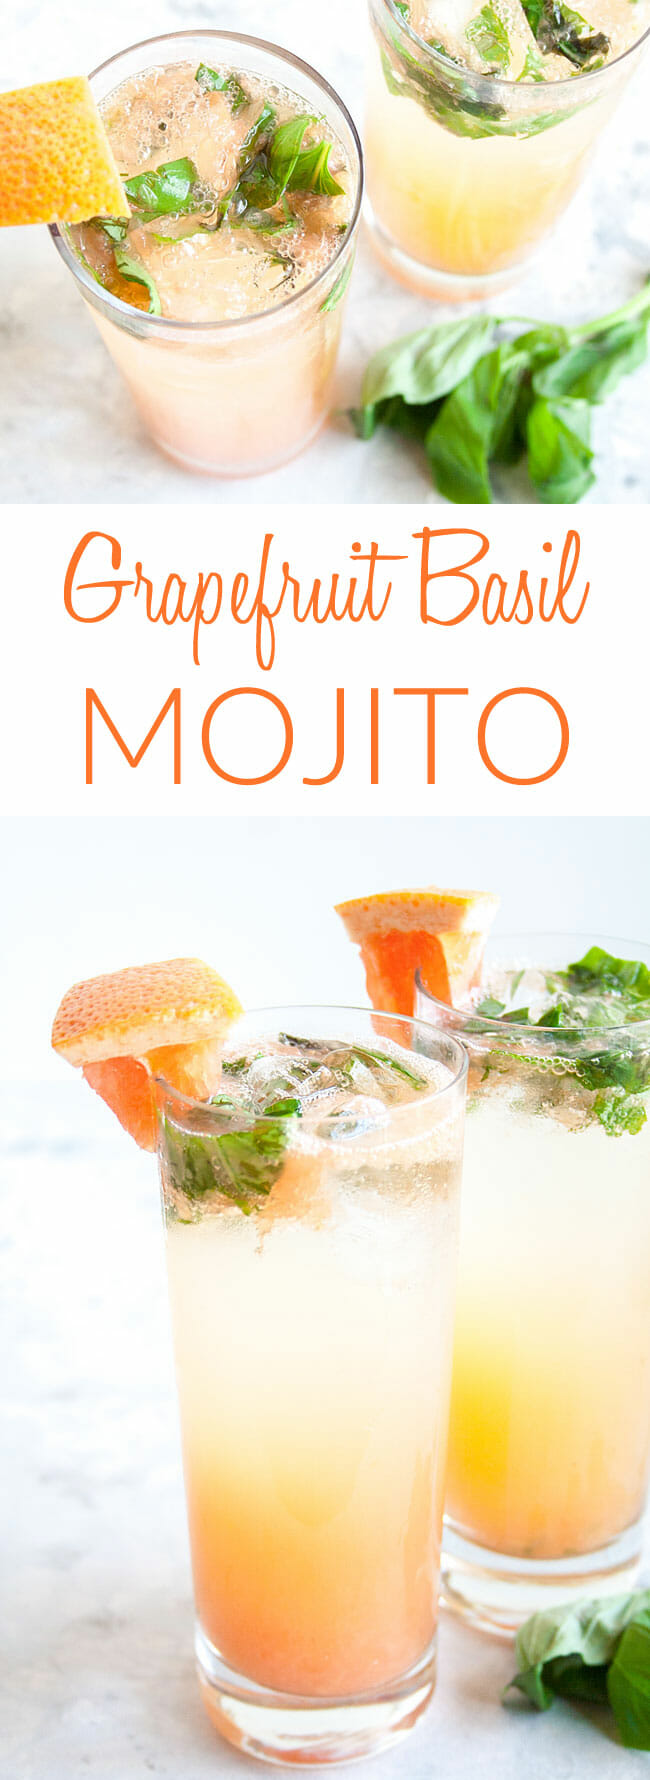 Grapefruit Basil Mojito collage photo with text.